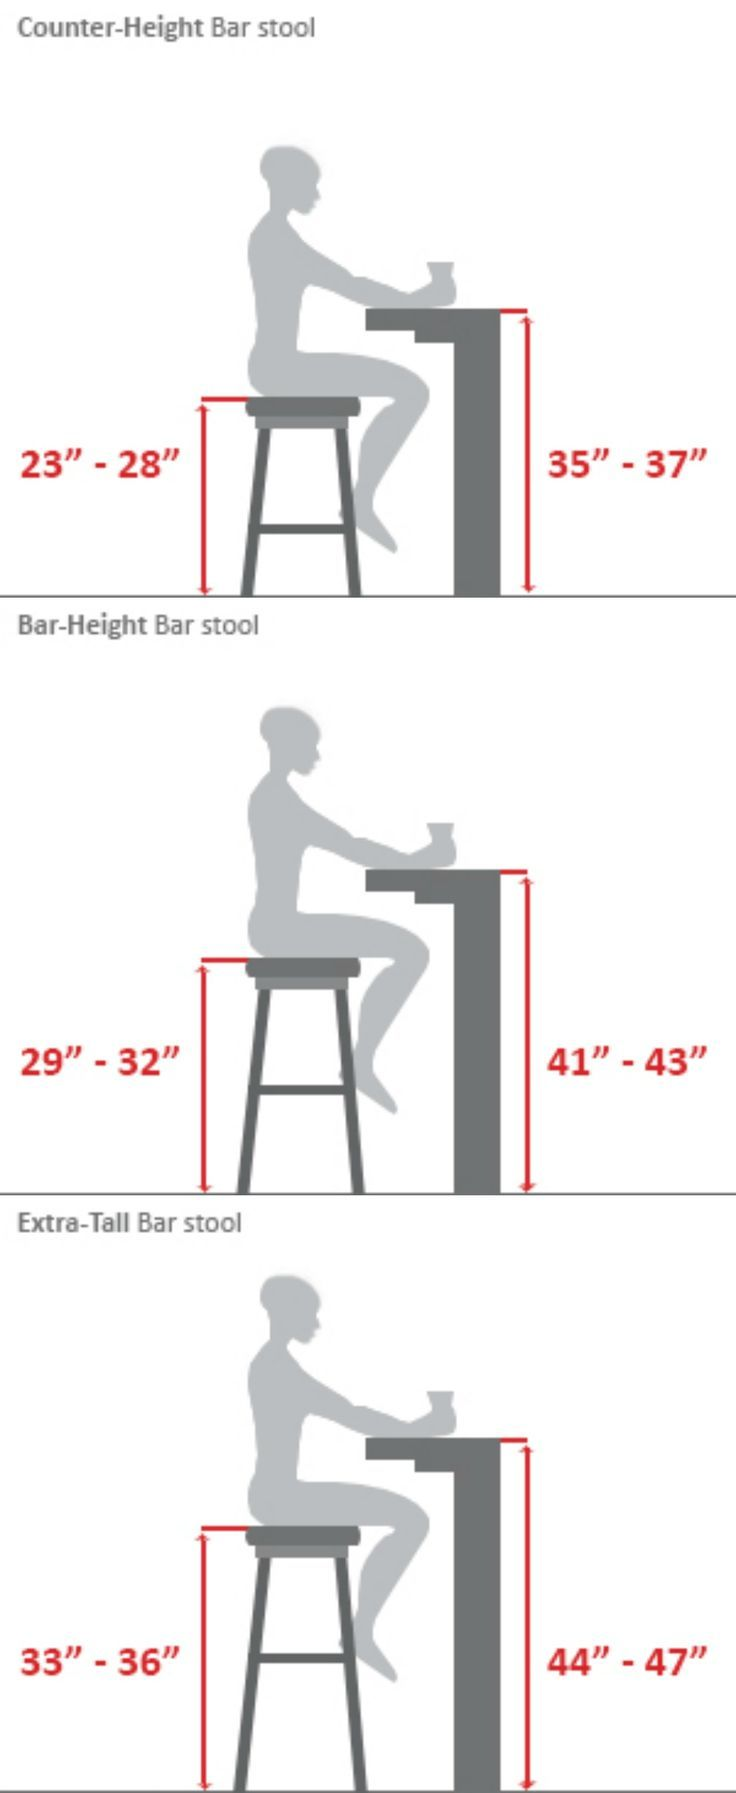 On bar stool buying guide or the builder s guide when building desks tables or bars these measurements come in handy